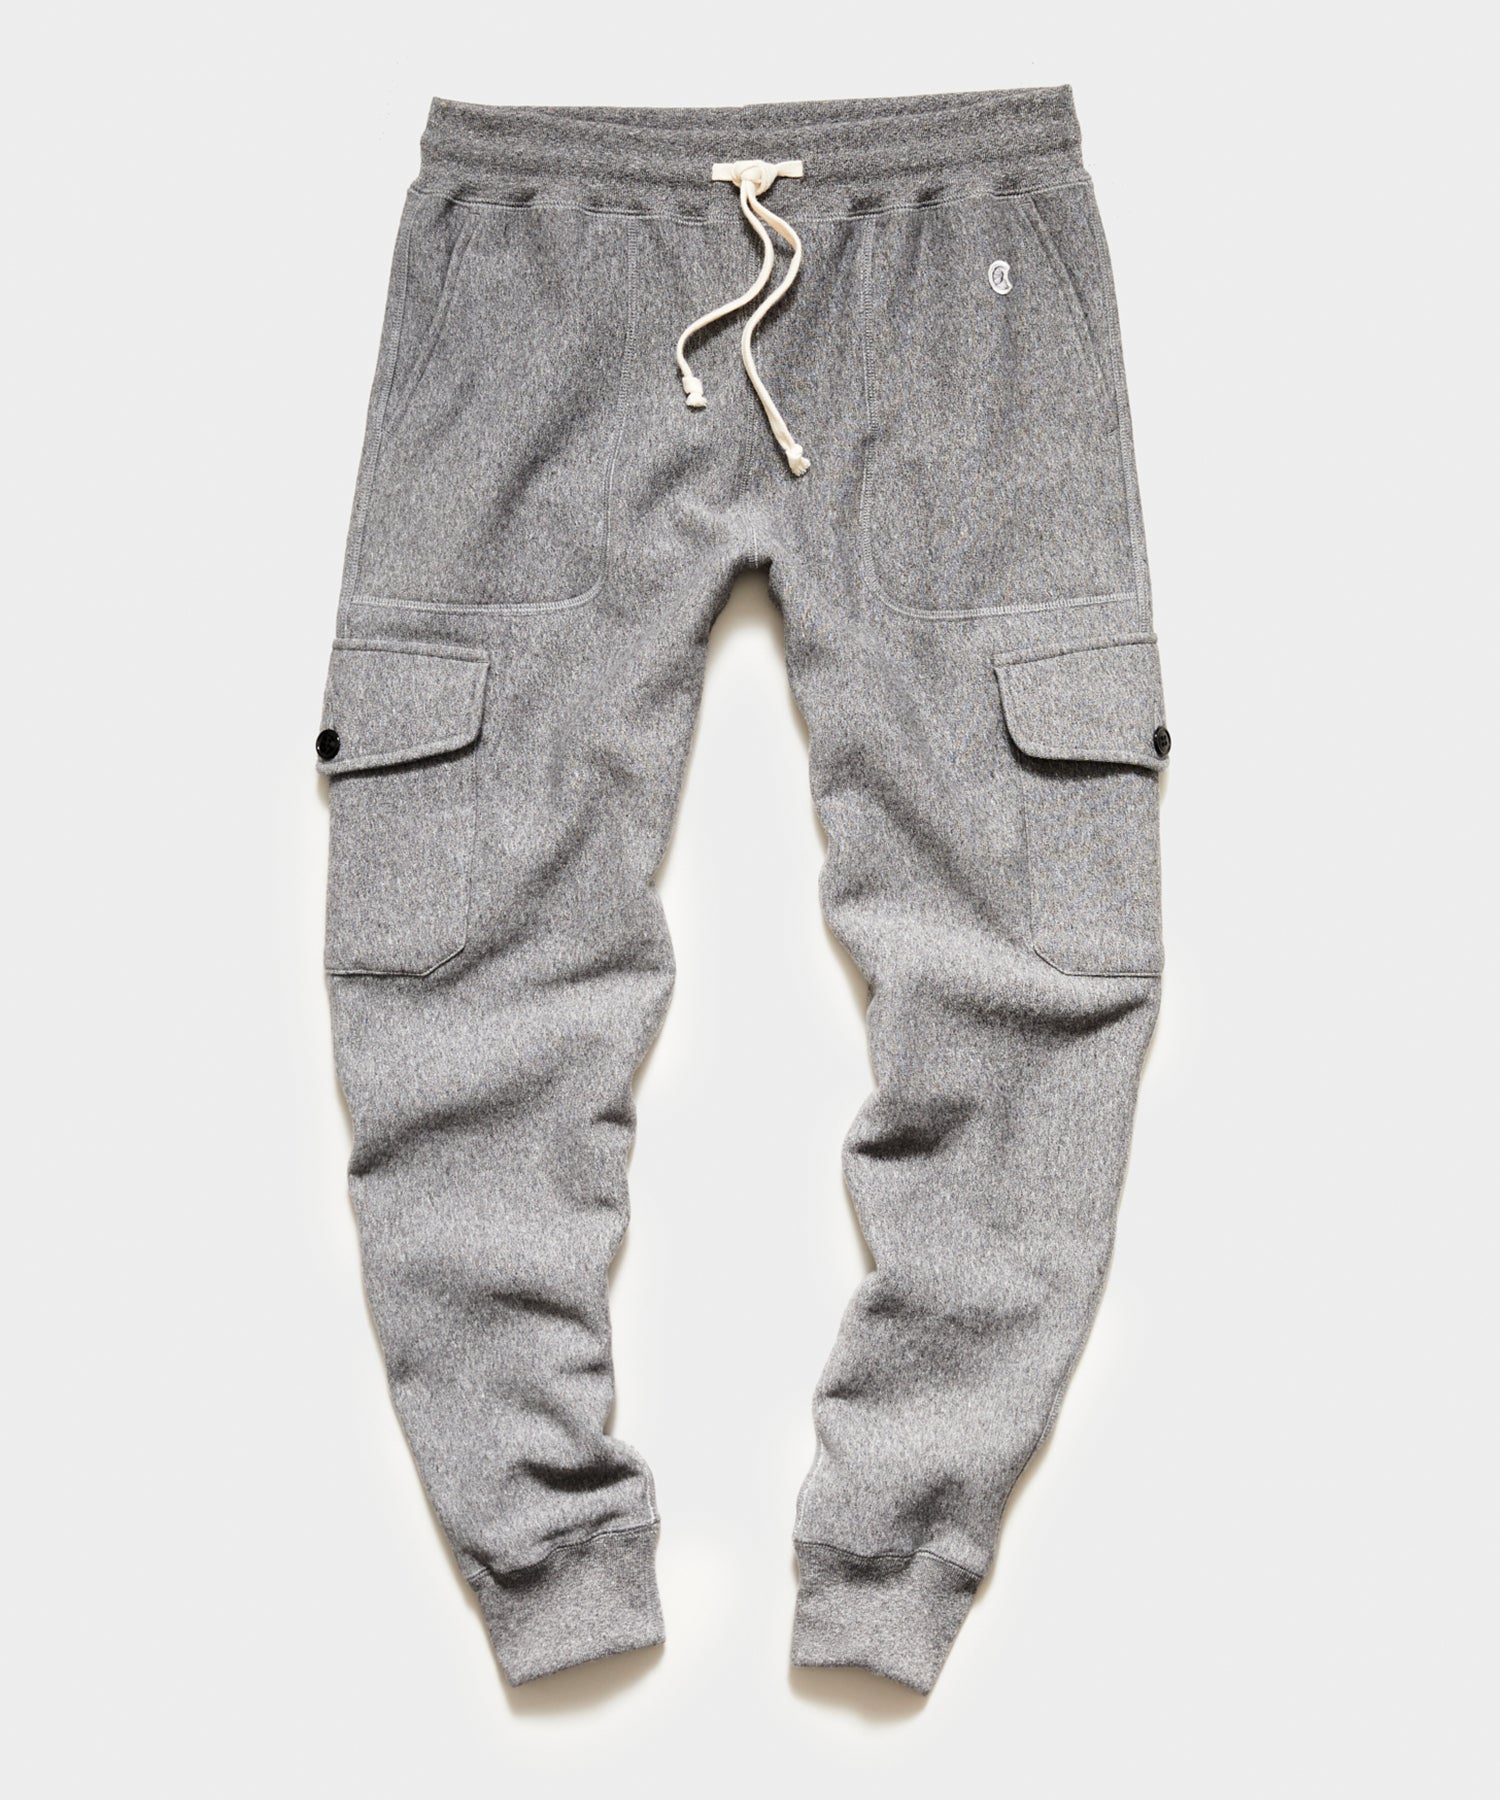 Utility Cargo Sweatpant in Salt and Pepper